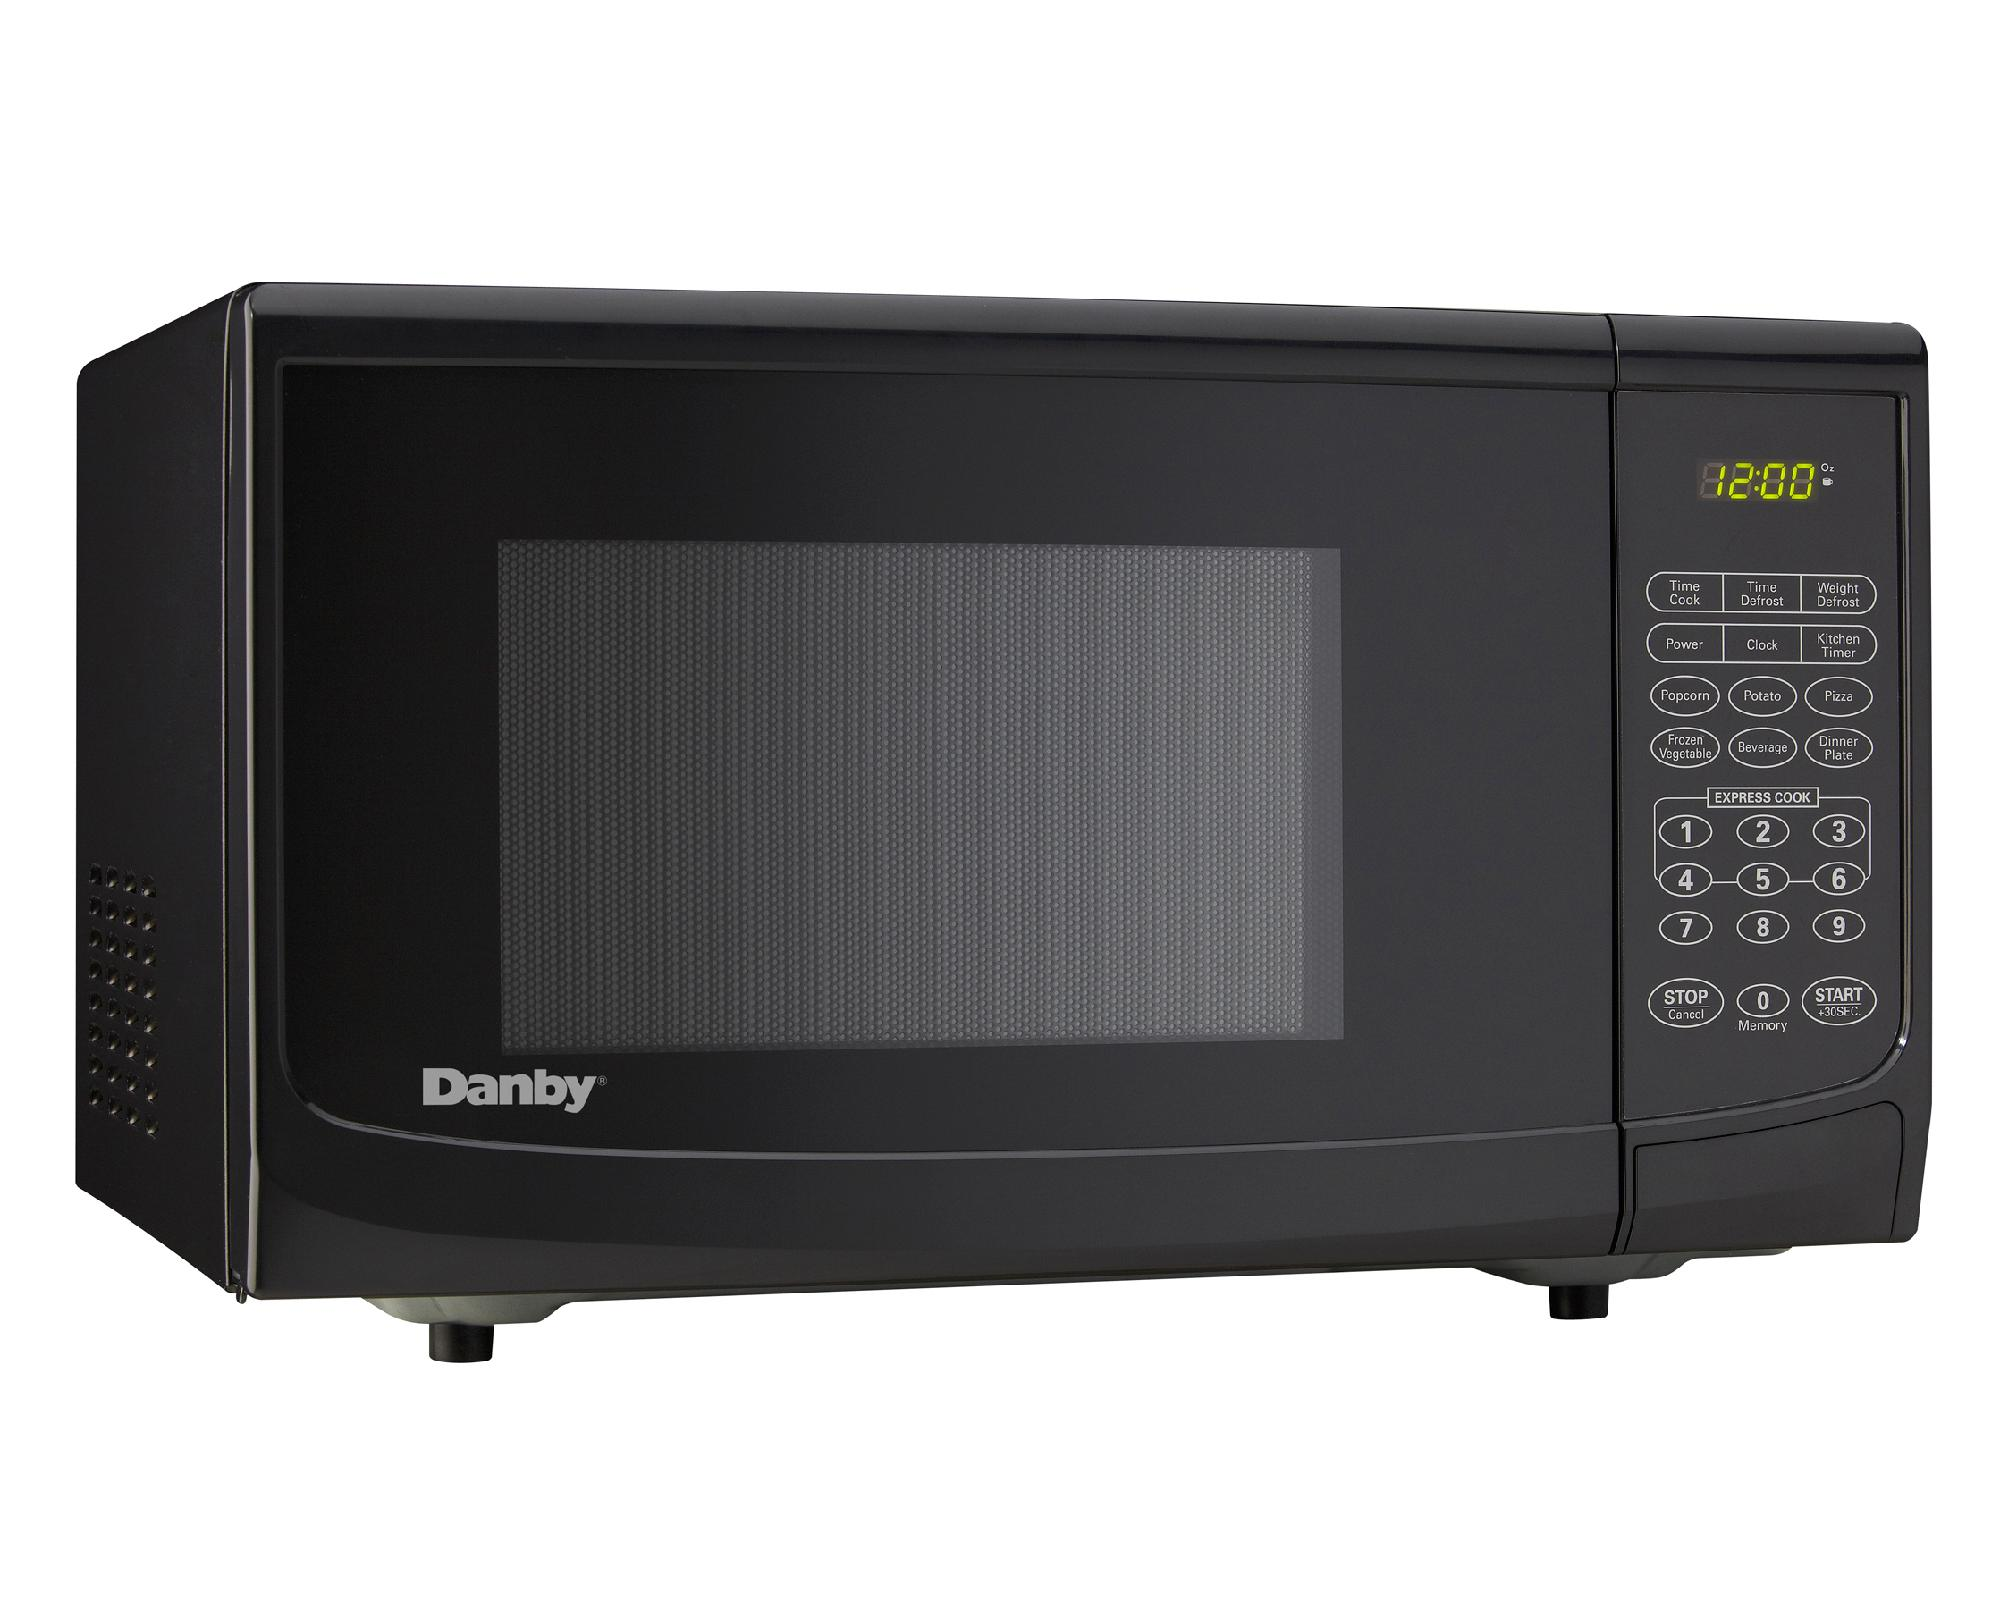 0.7 Cu. Ft. 700W Countertop Microwave Oven -